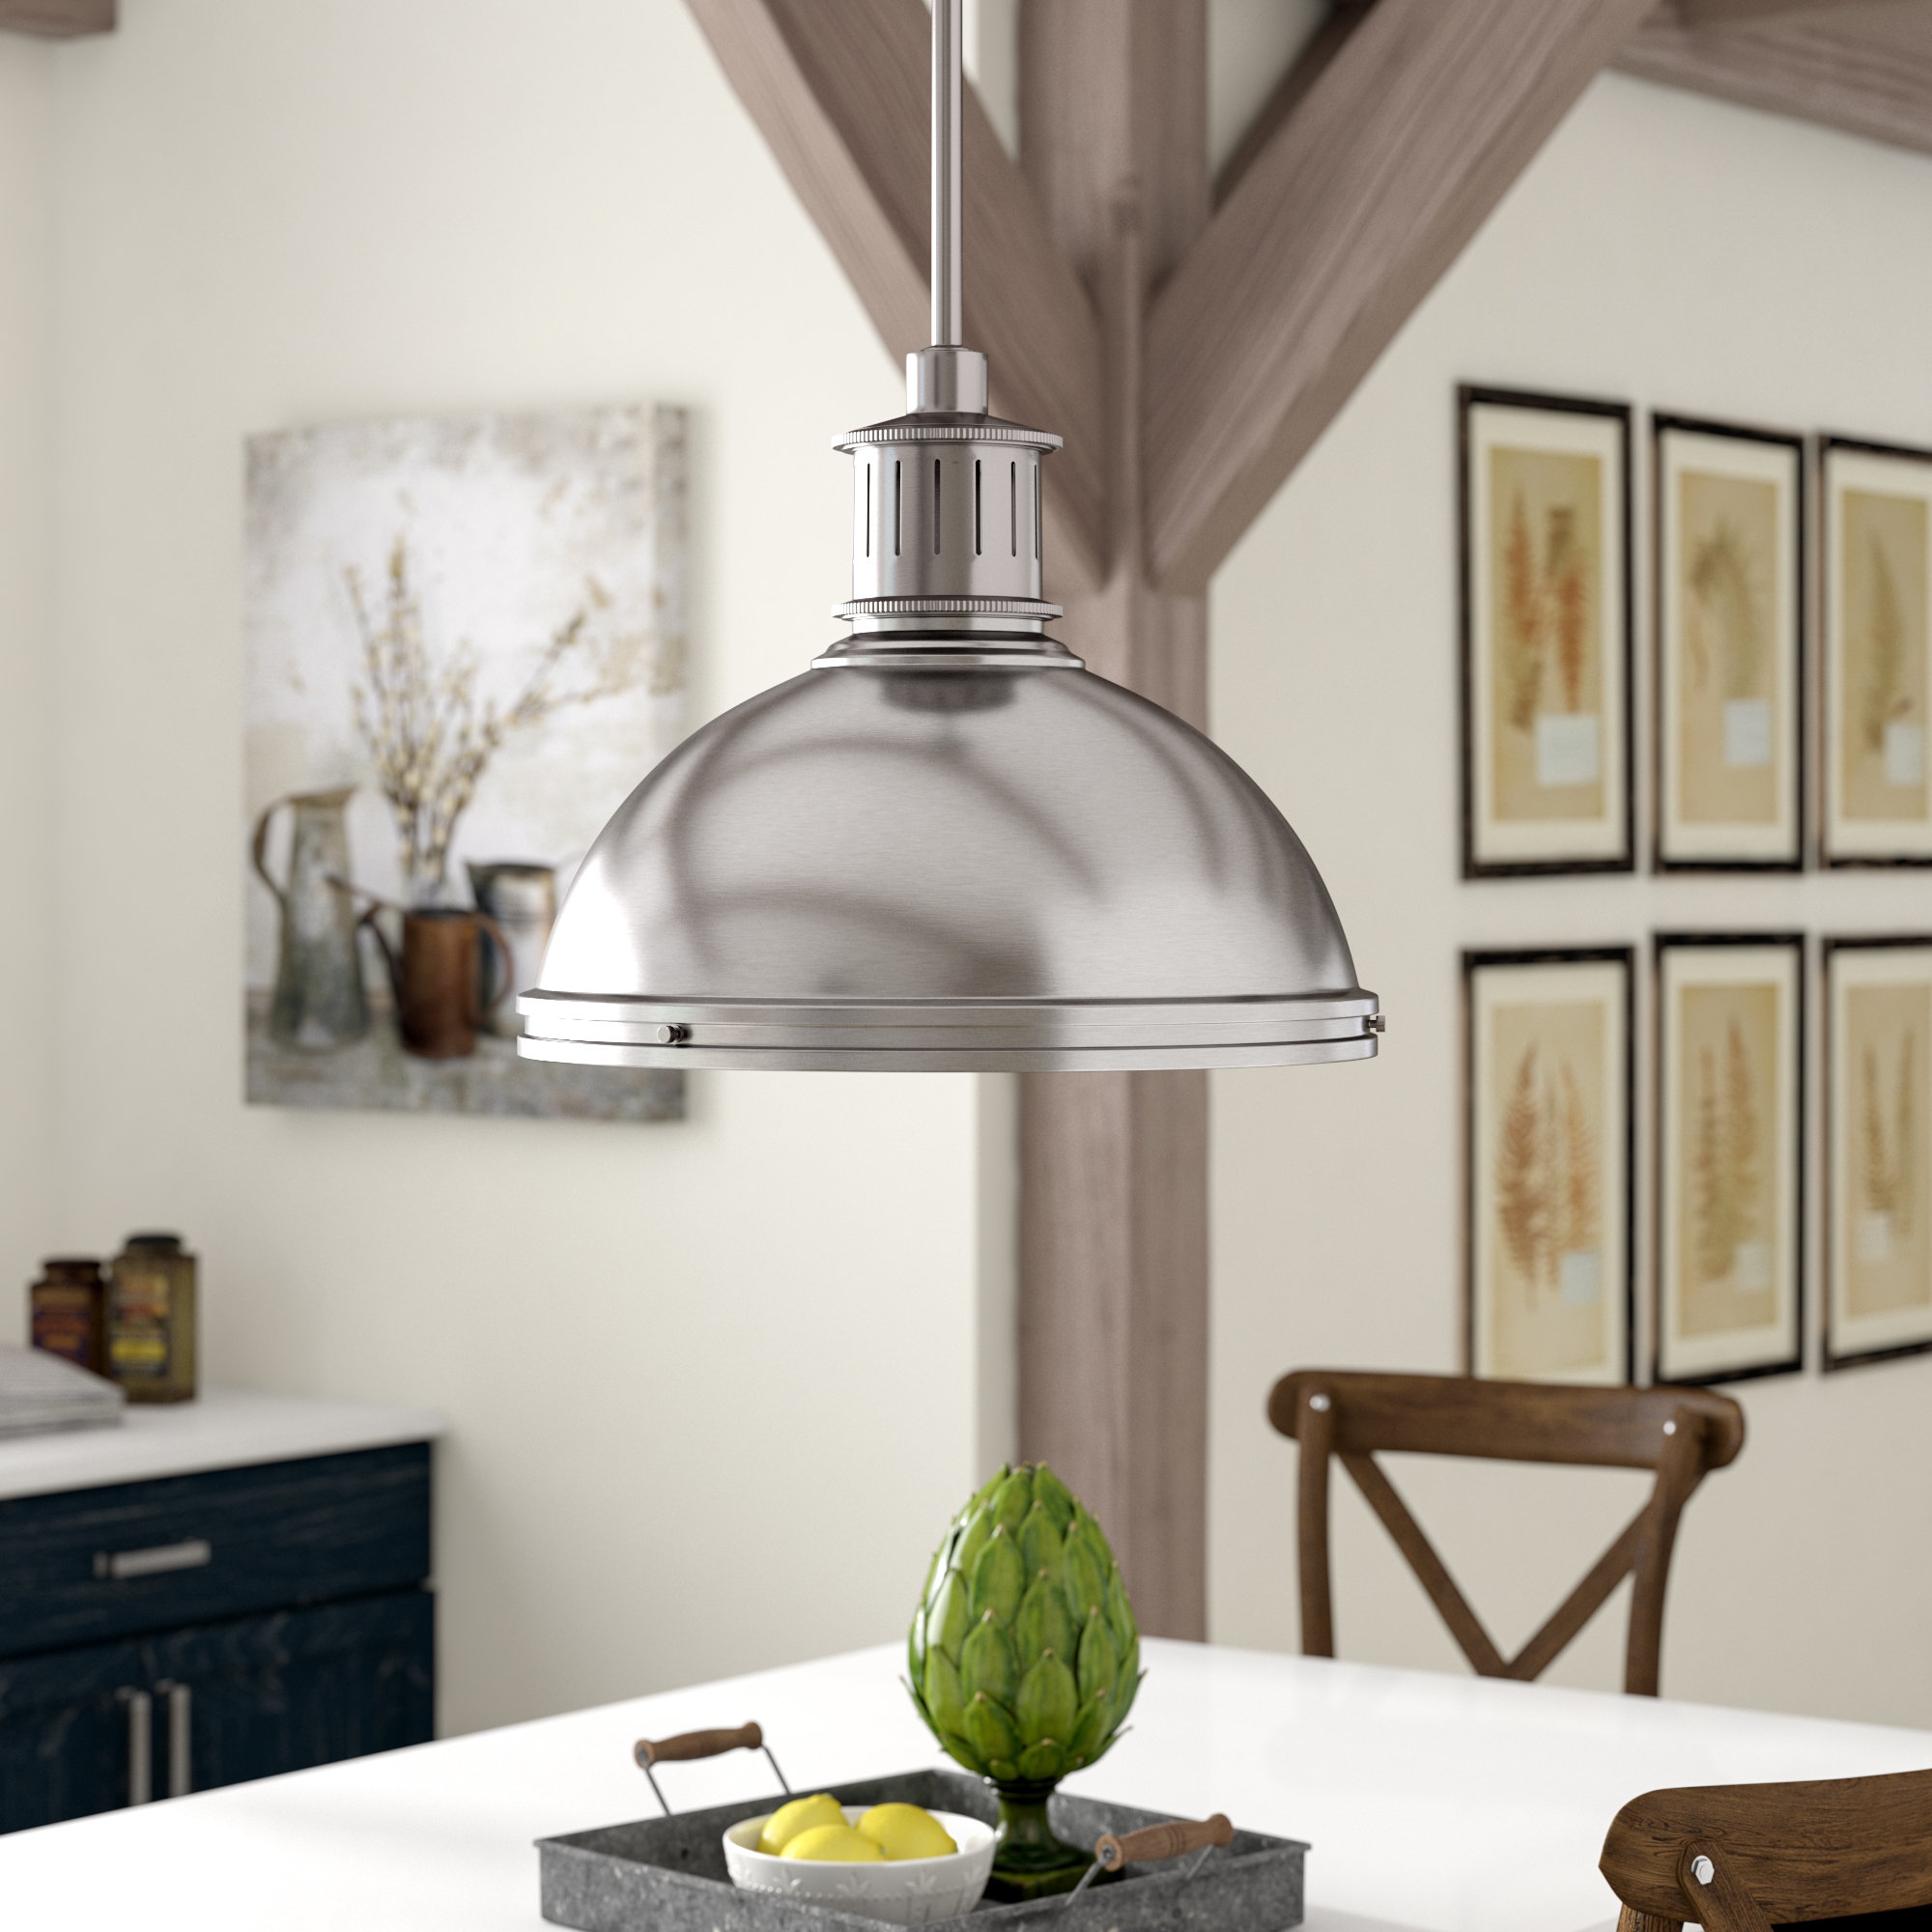 Most Recent Orchard Hill 1 Light Led Single Dome Pendant For Amara 3 Light Dome Pendants (View 16 of 20)